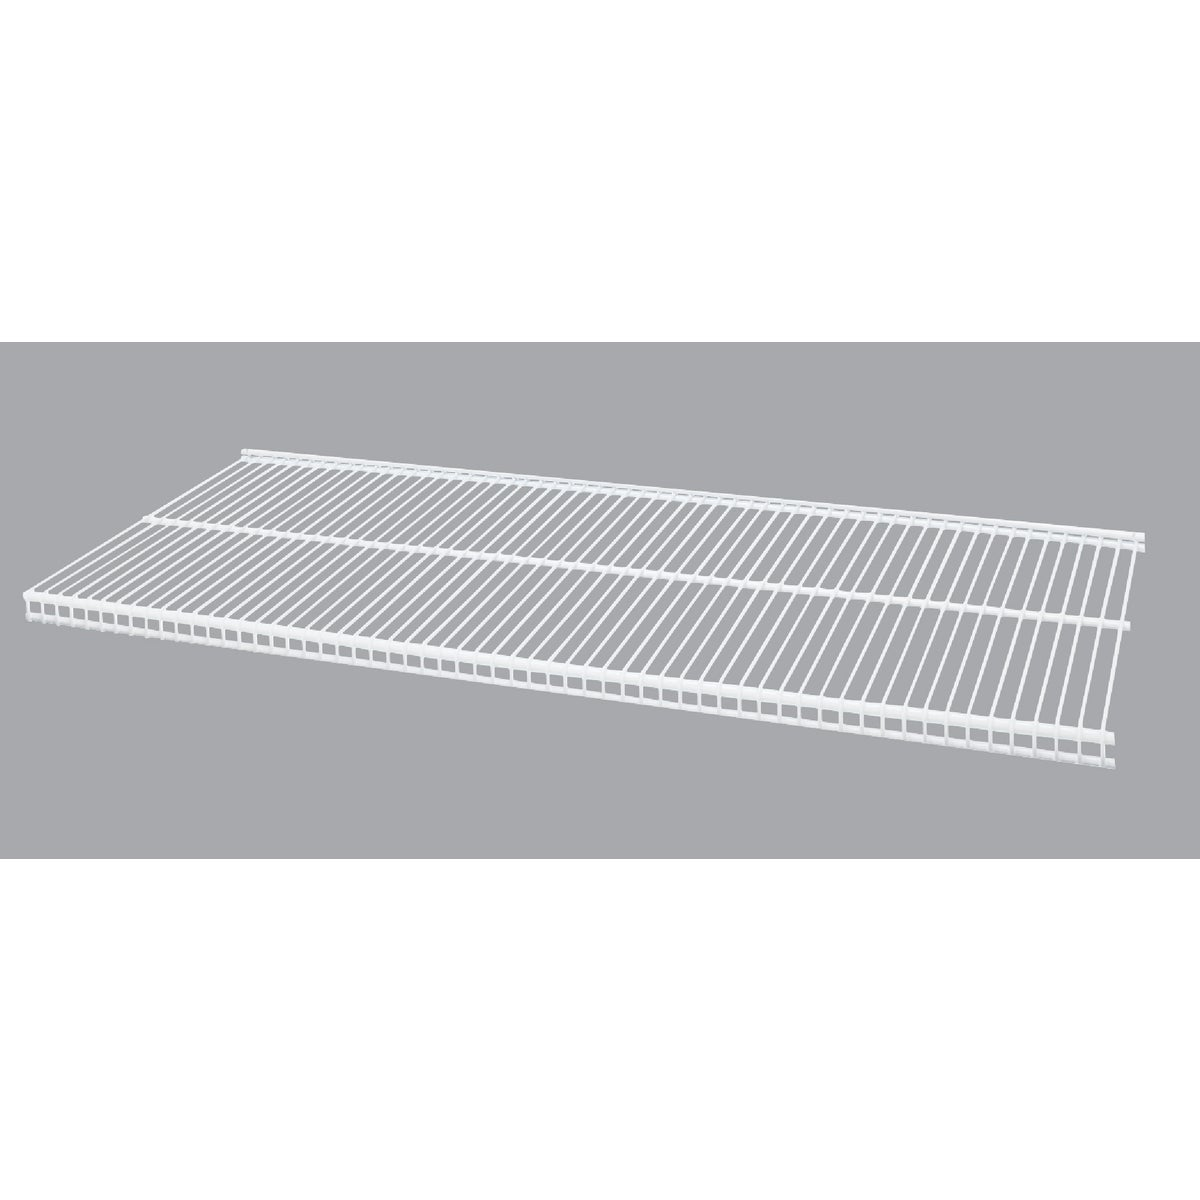 "12""X30"" WH PROFILE SHELF - 1813123011 by Schulte Corp"